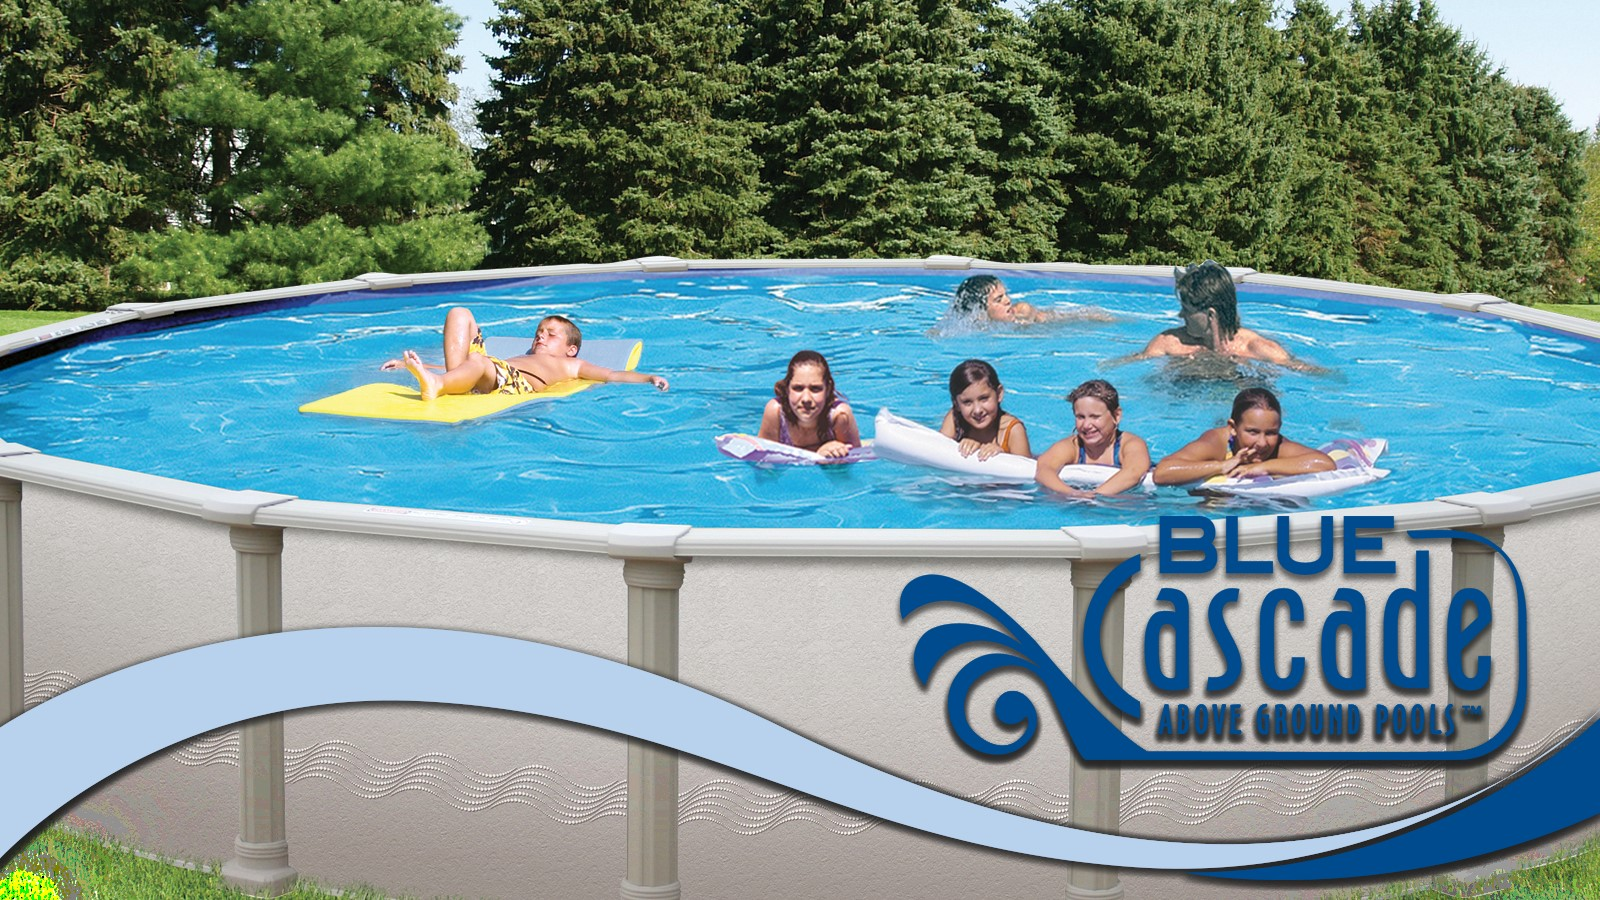 Above Ground Pools | Blue Cascade Pools | Financing Available!